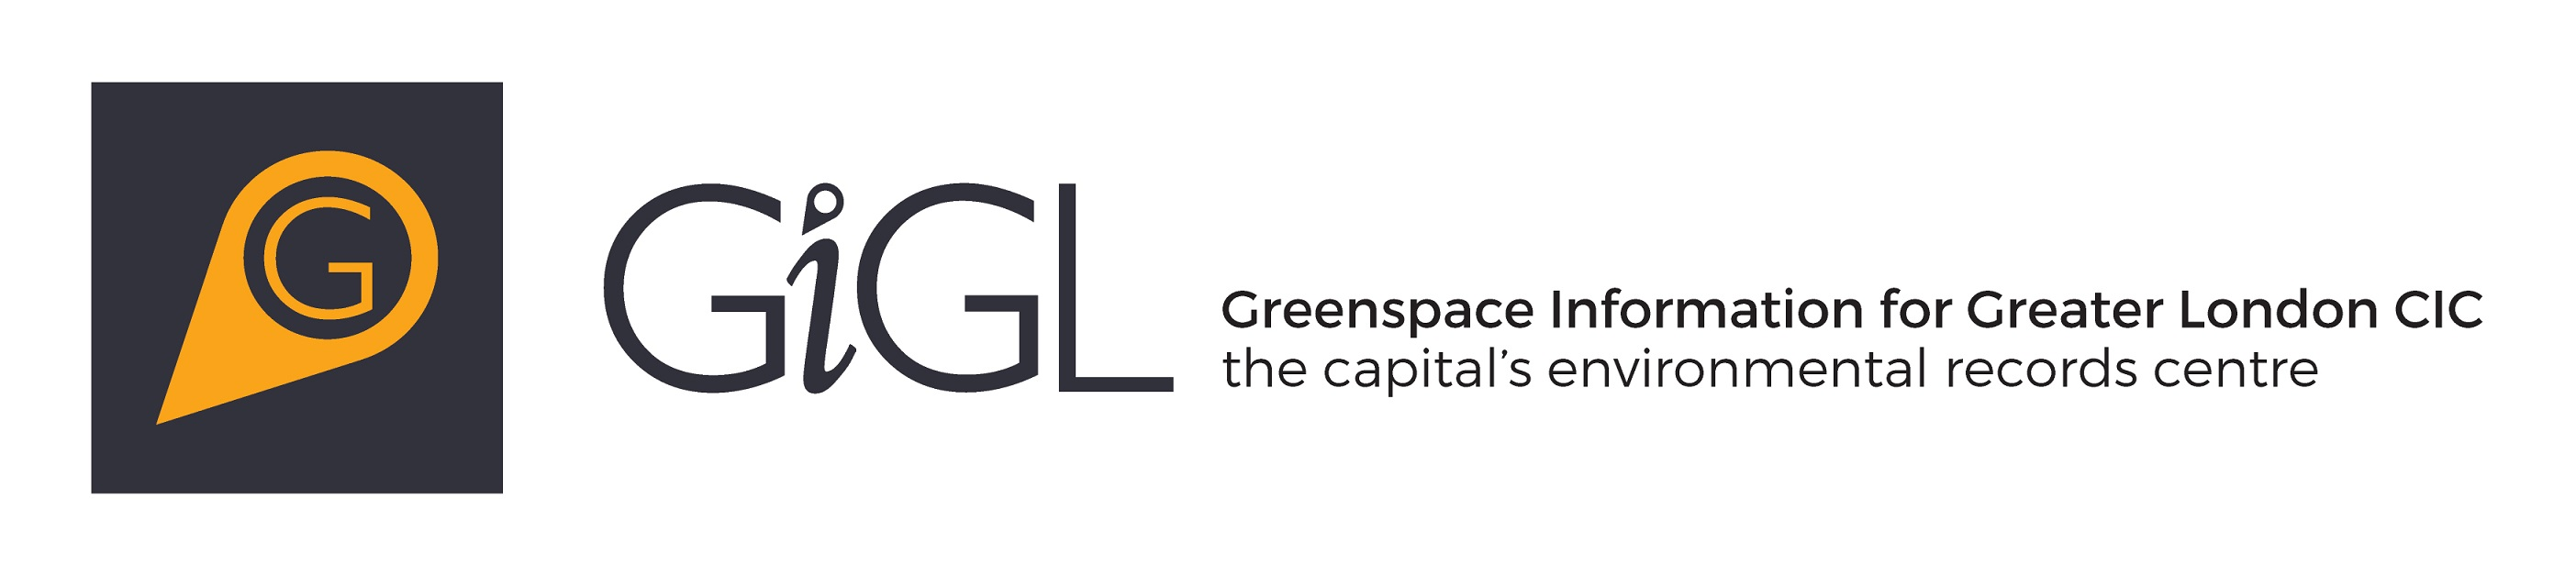 Greenspace Information for Greater London CIC logo